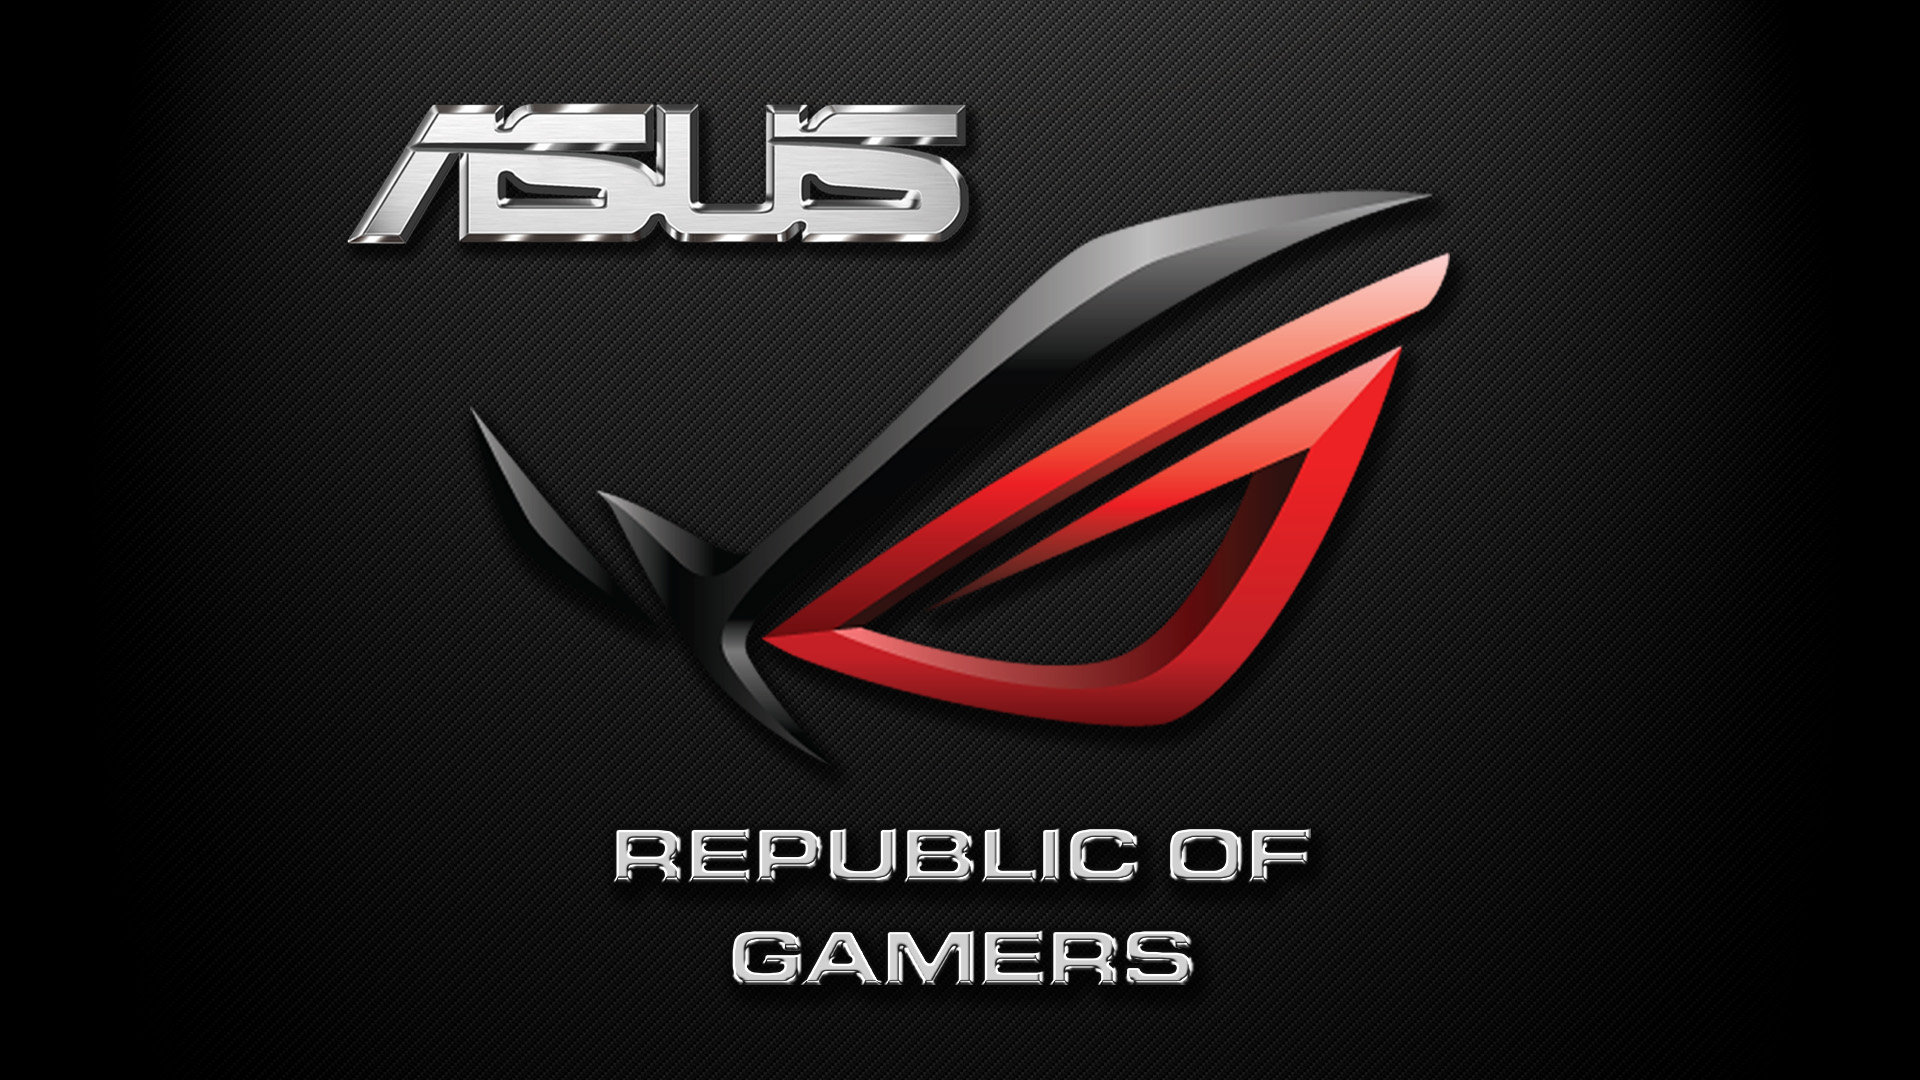 HQ Asus ROG Wallpapers | File 493.25Kb